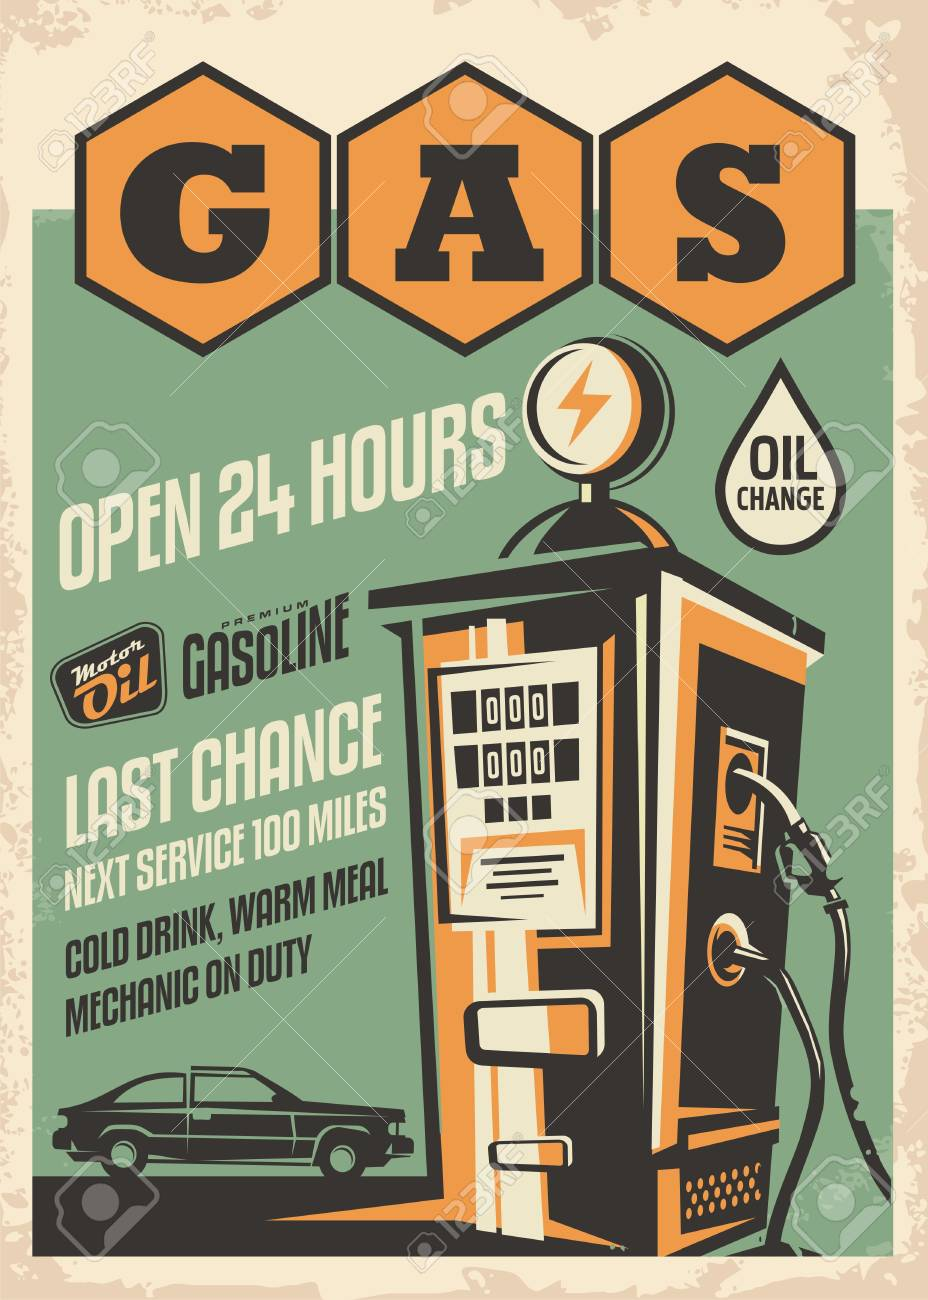 Gas station retro poster design  Vintage flyer with car graphic